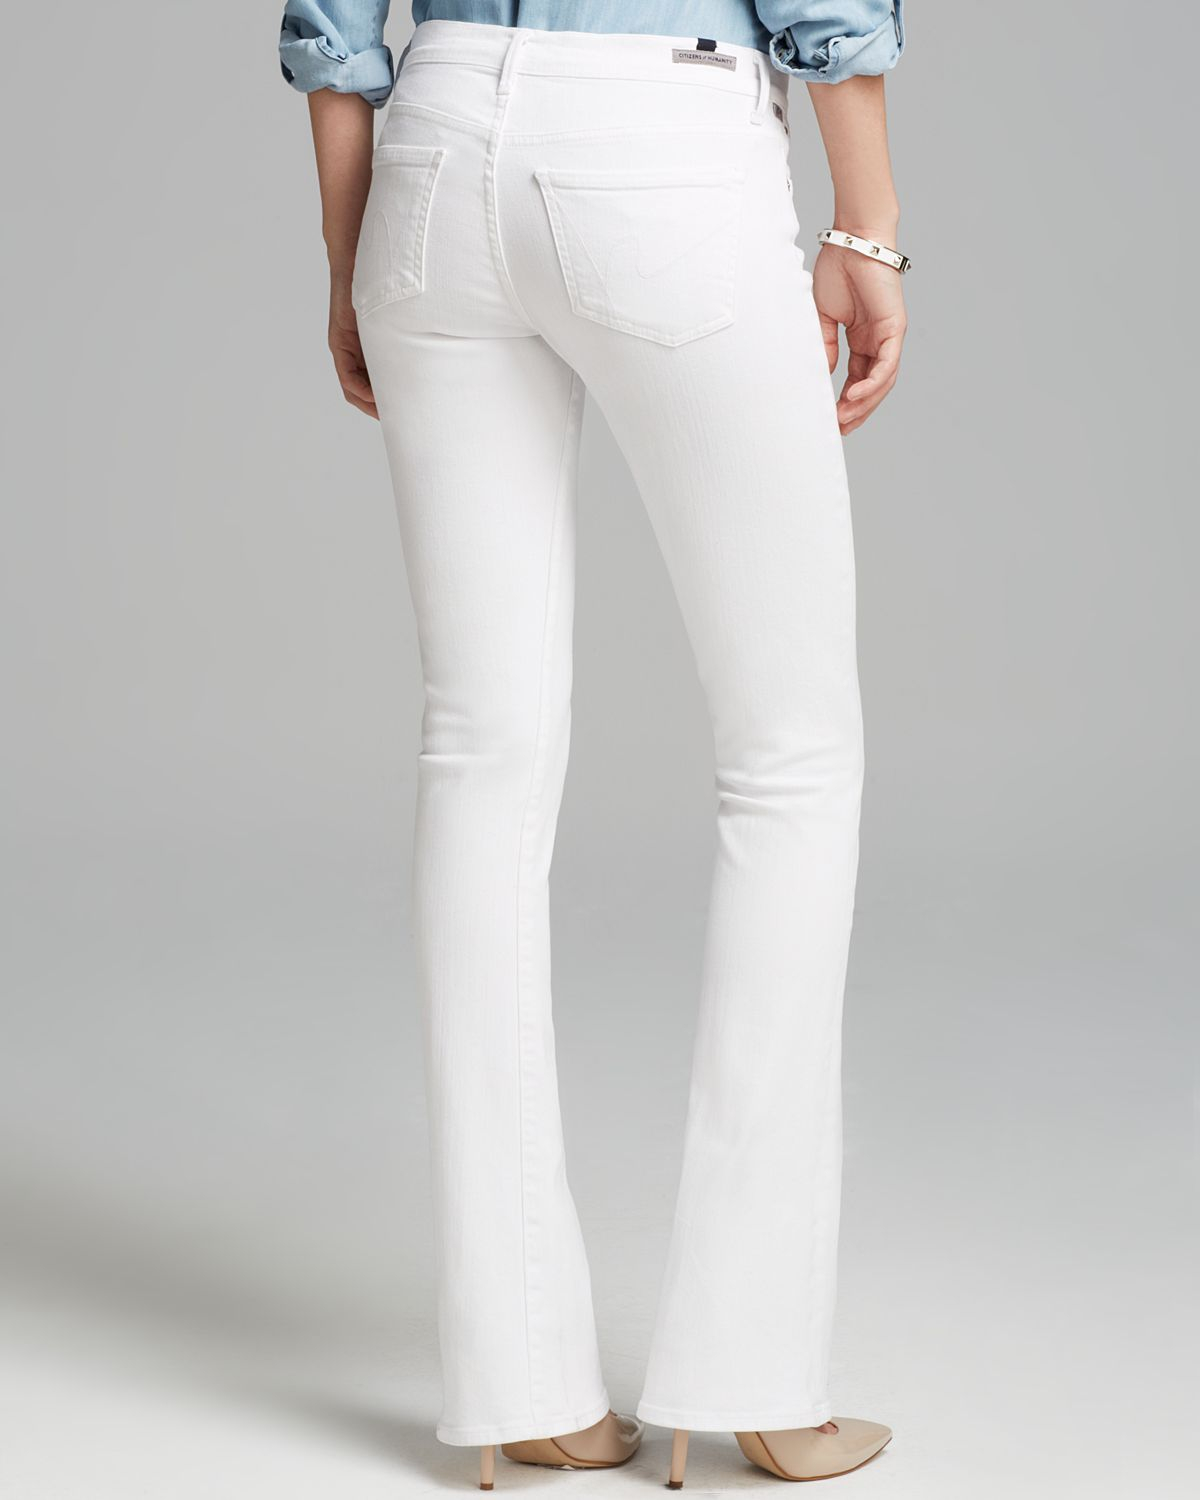 Women's Bootcut Jeans are essential for any look - from work to the weekend! We offer the brands of women's jeans that you want, including women's Rock & Republic bootcut jeans. We also have all sizes covered, from petite bootcut jeans to plus size bootcut jeans.